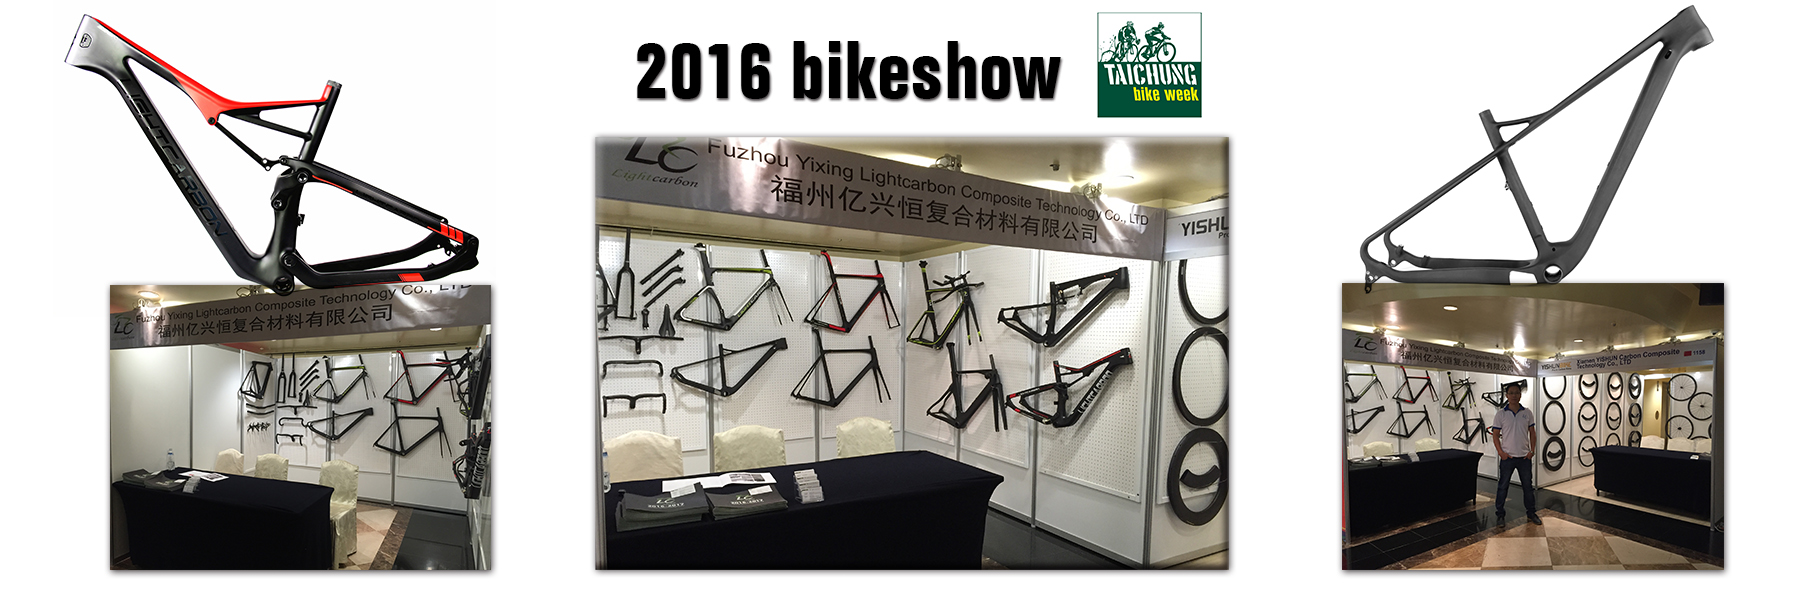 lightcarbon taichung bike week